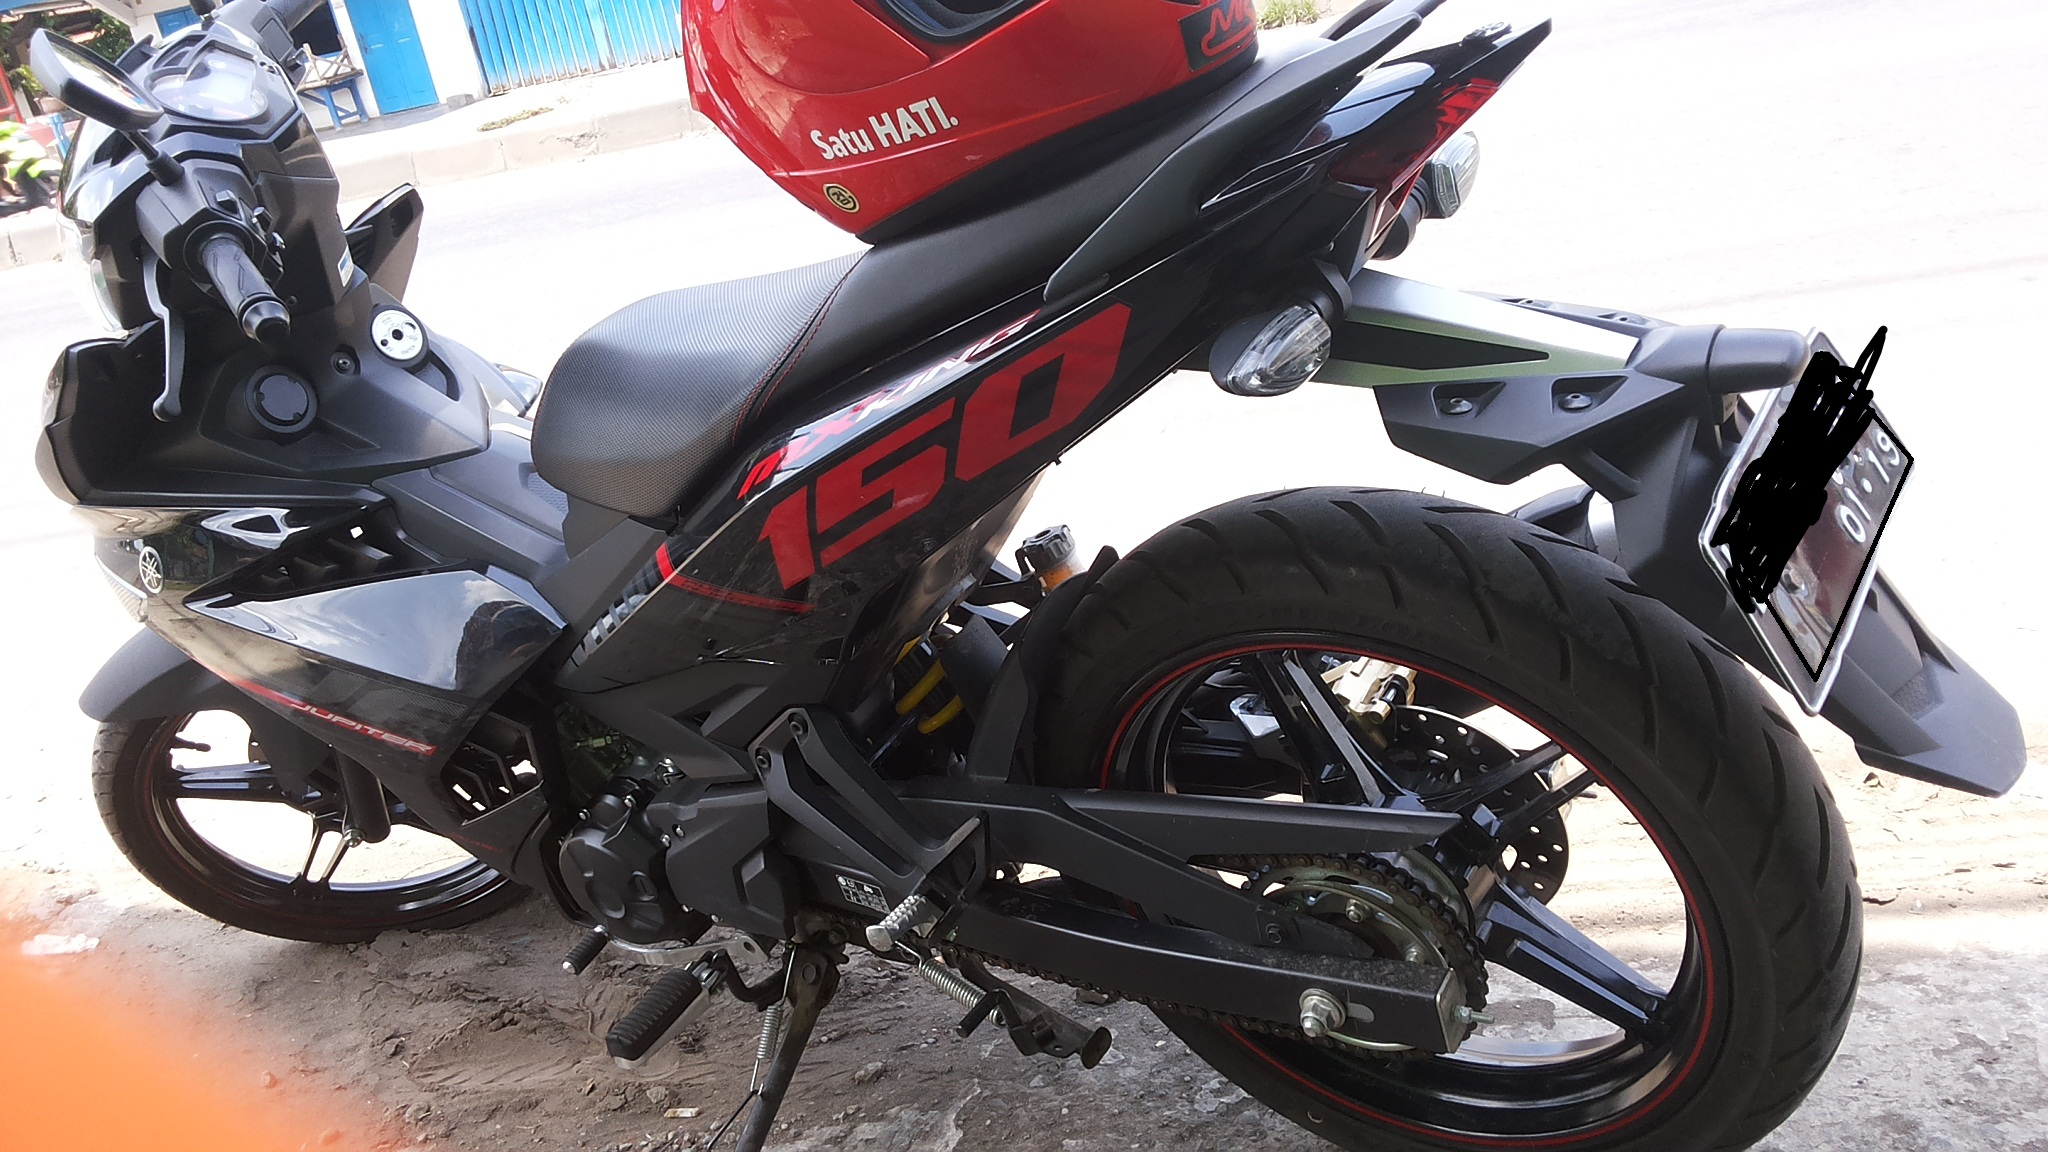 Test Ride N Review Yamaha MX King 150 Hail The King Part 2 End